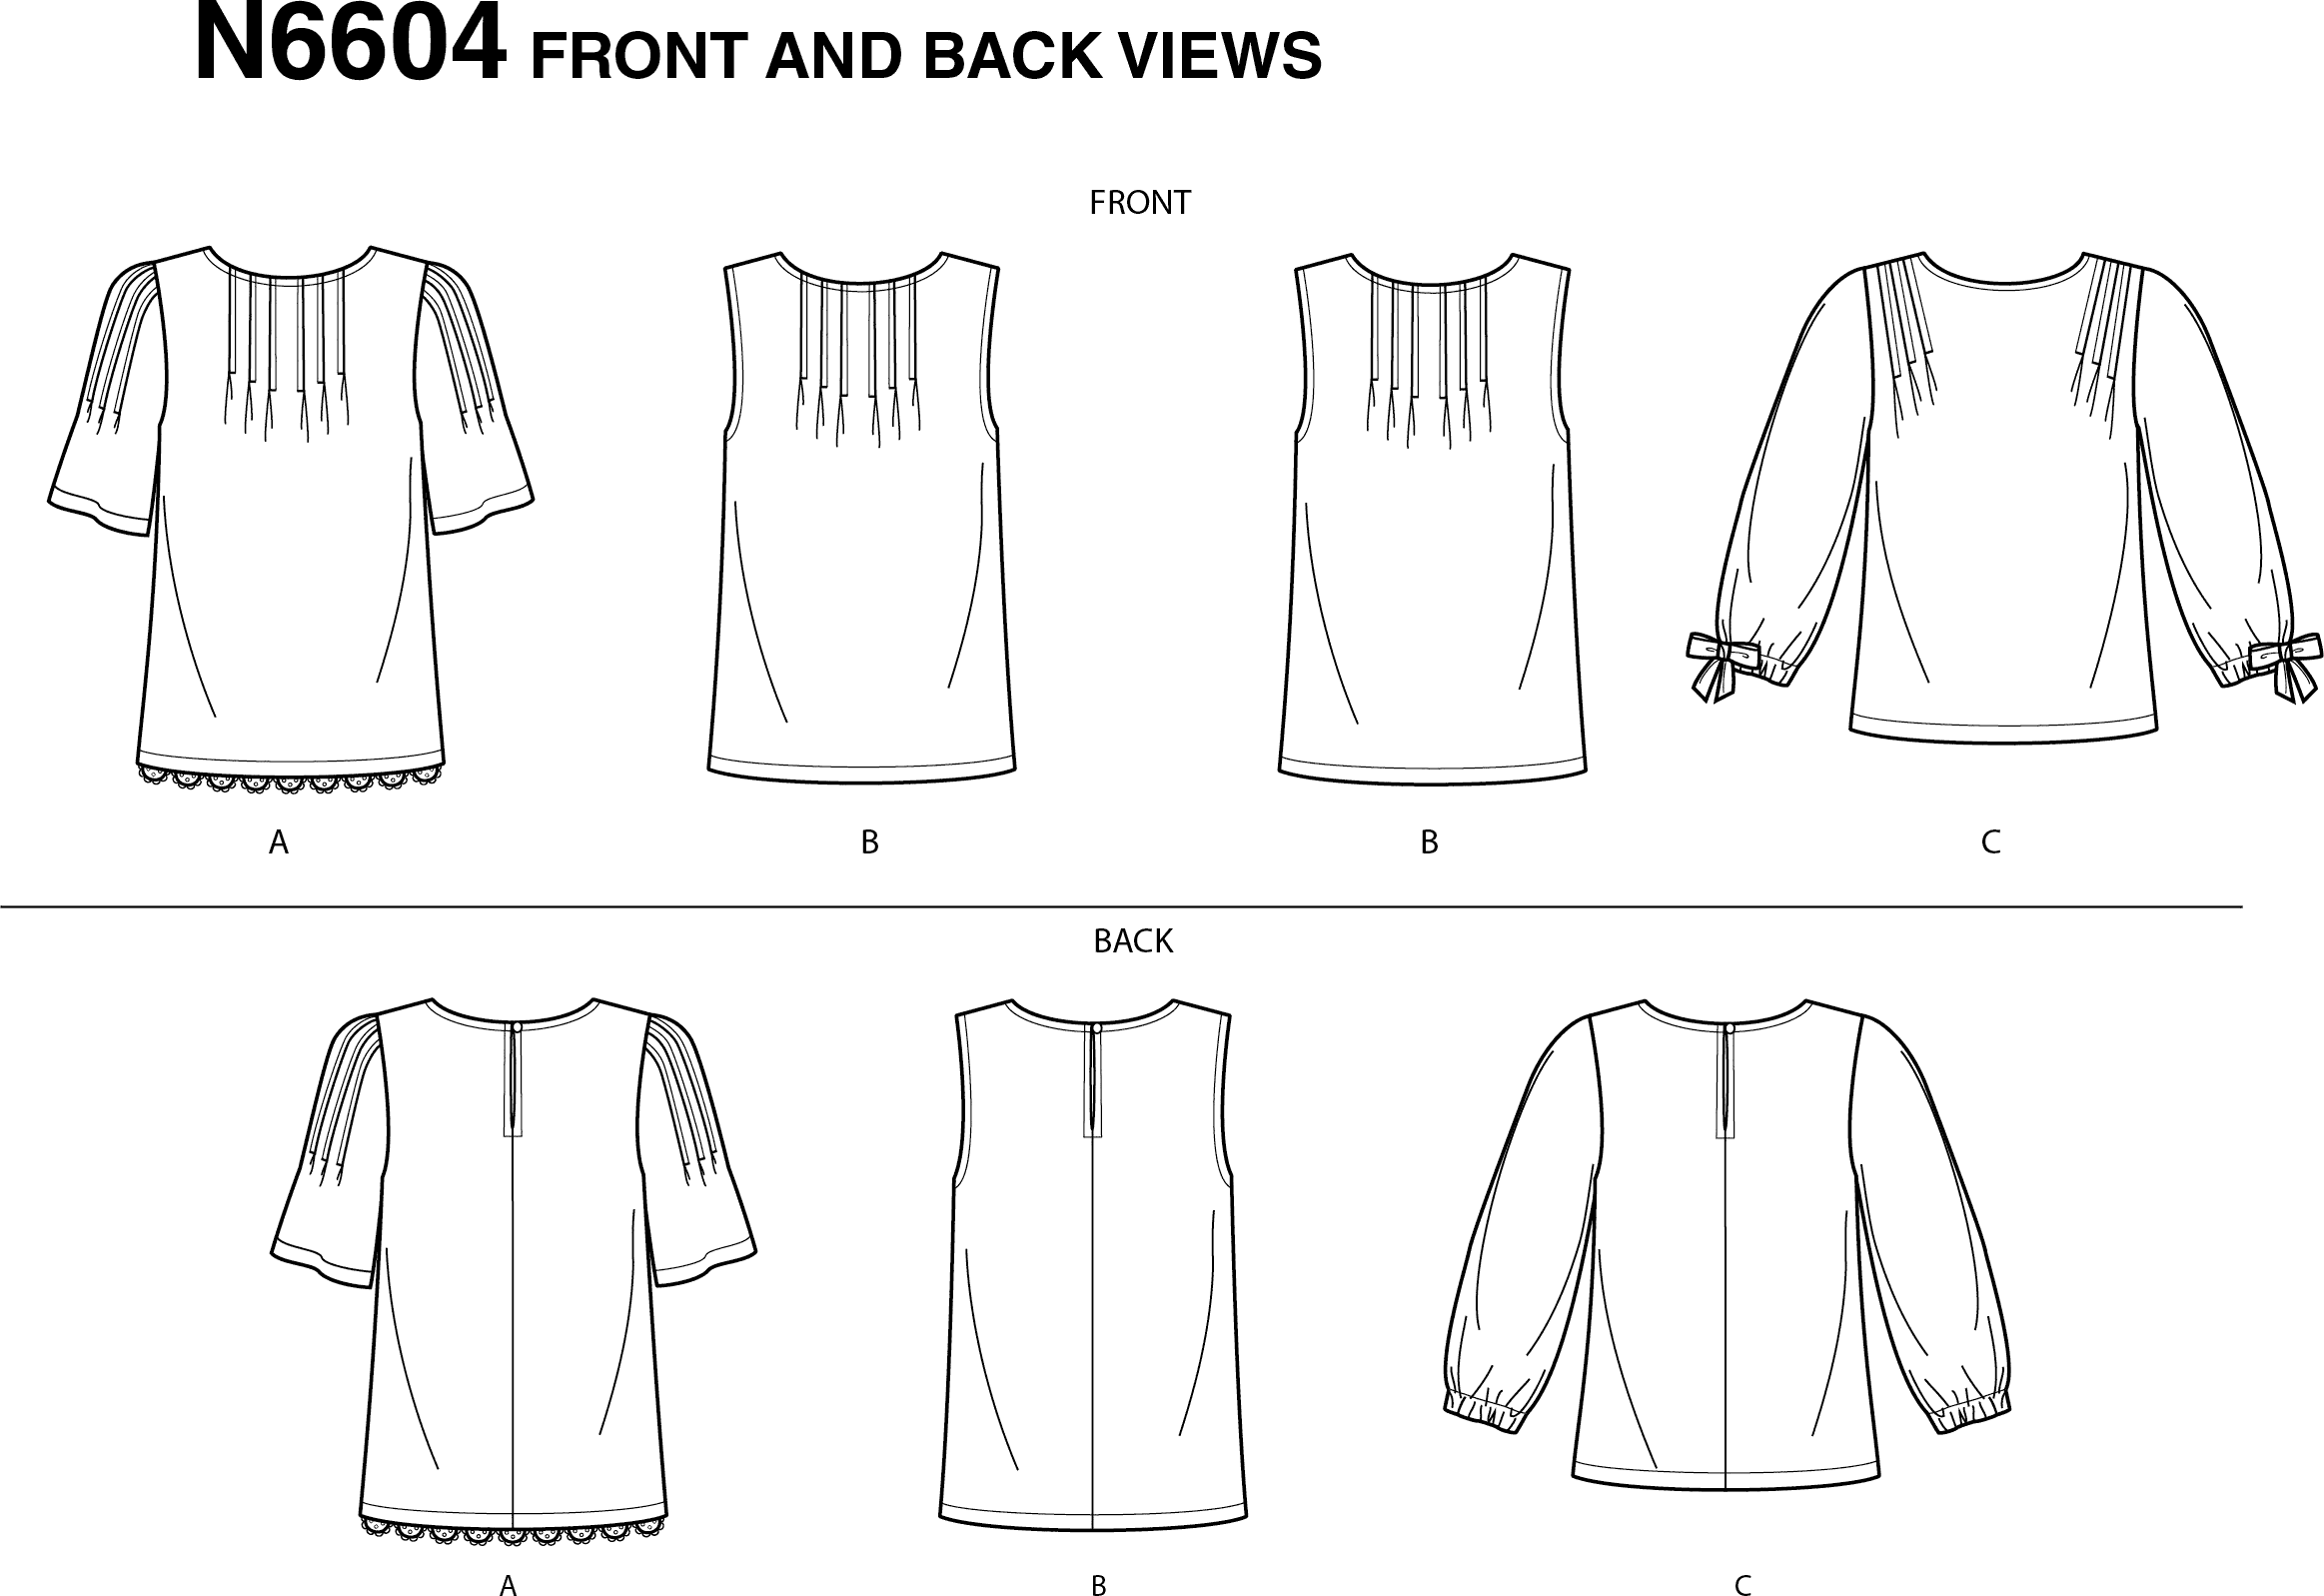 New Look Sewing Pattern N6604 Misses Tops 6604 Line Art From Patternsandplains.com